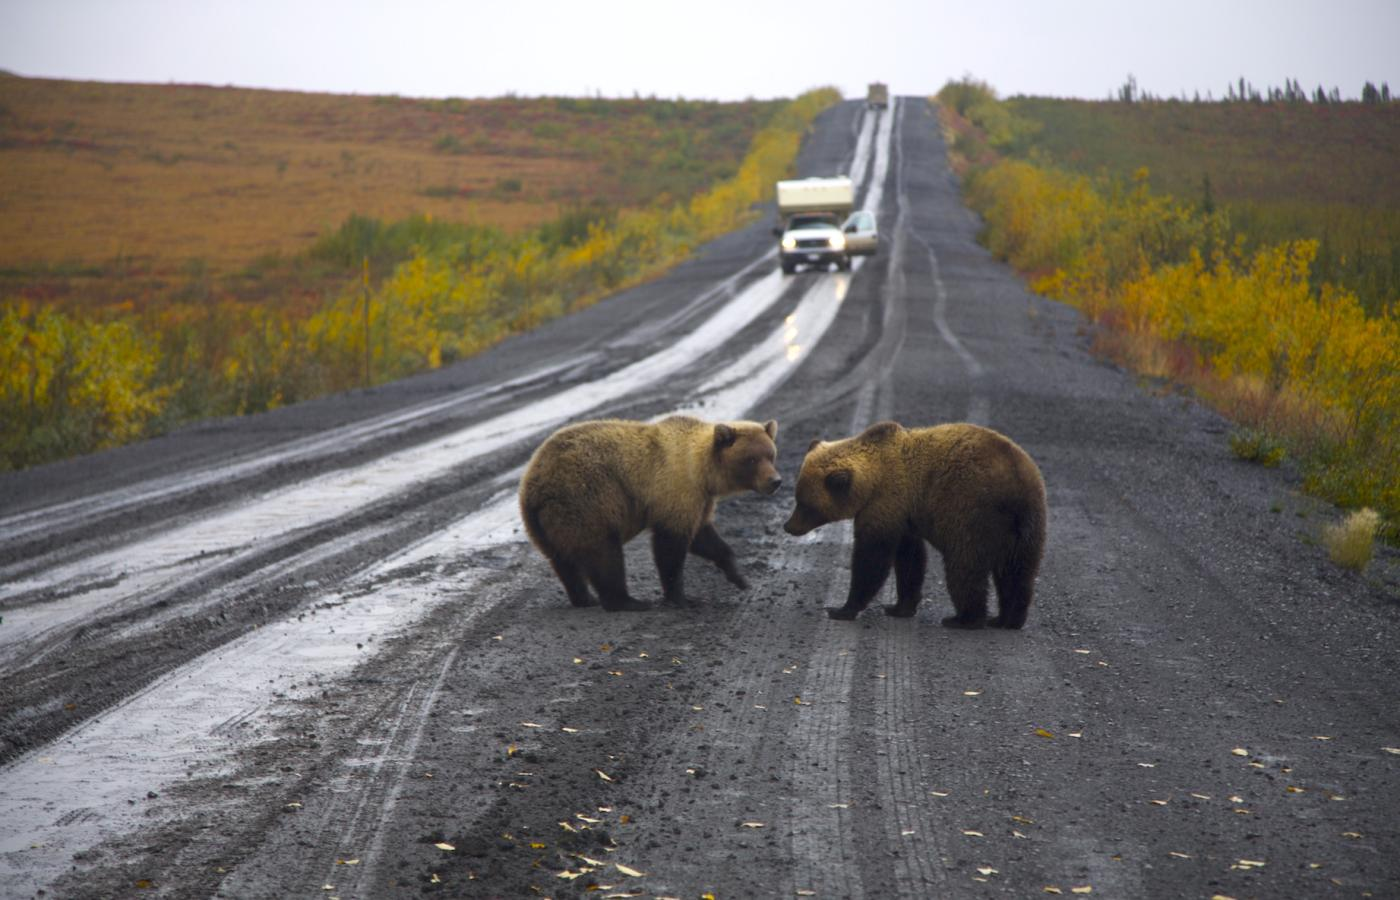 Grizzly bears on the the Dempster Highway in Canada's Northwest Territories